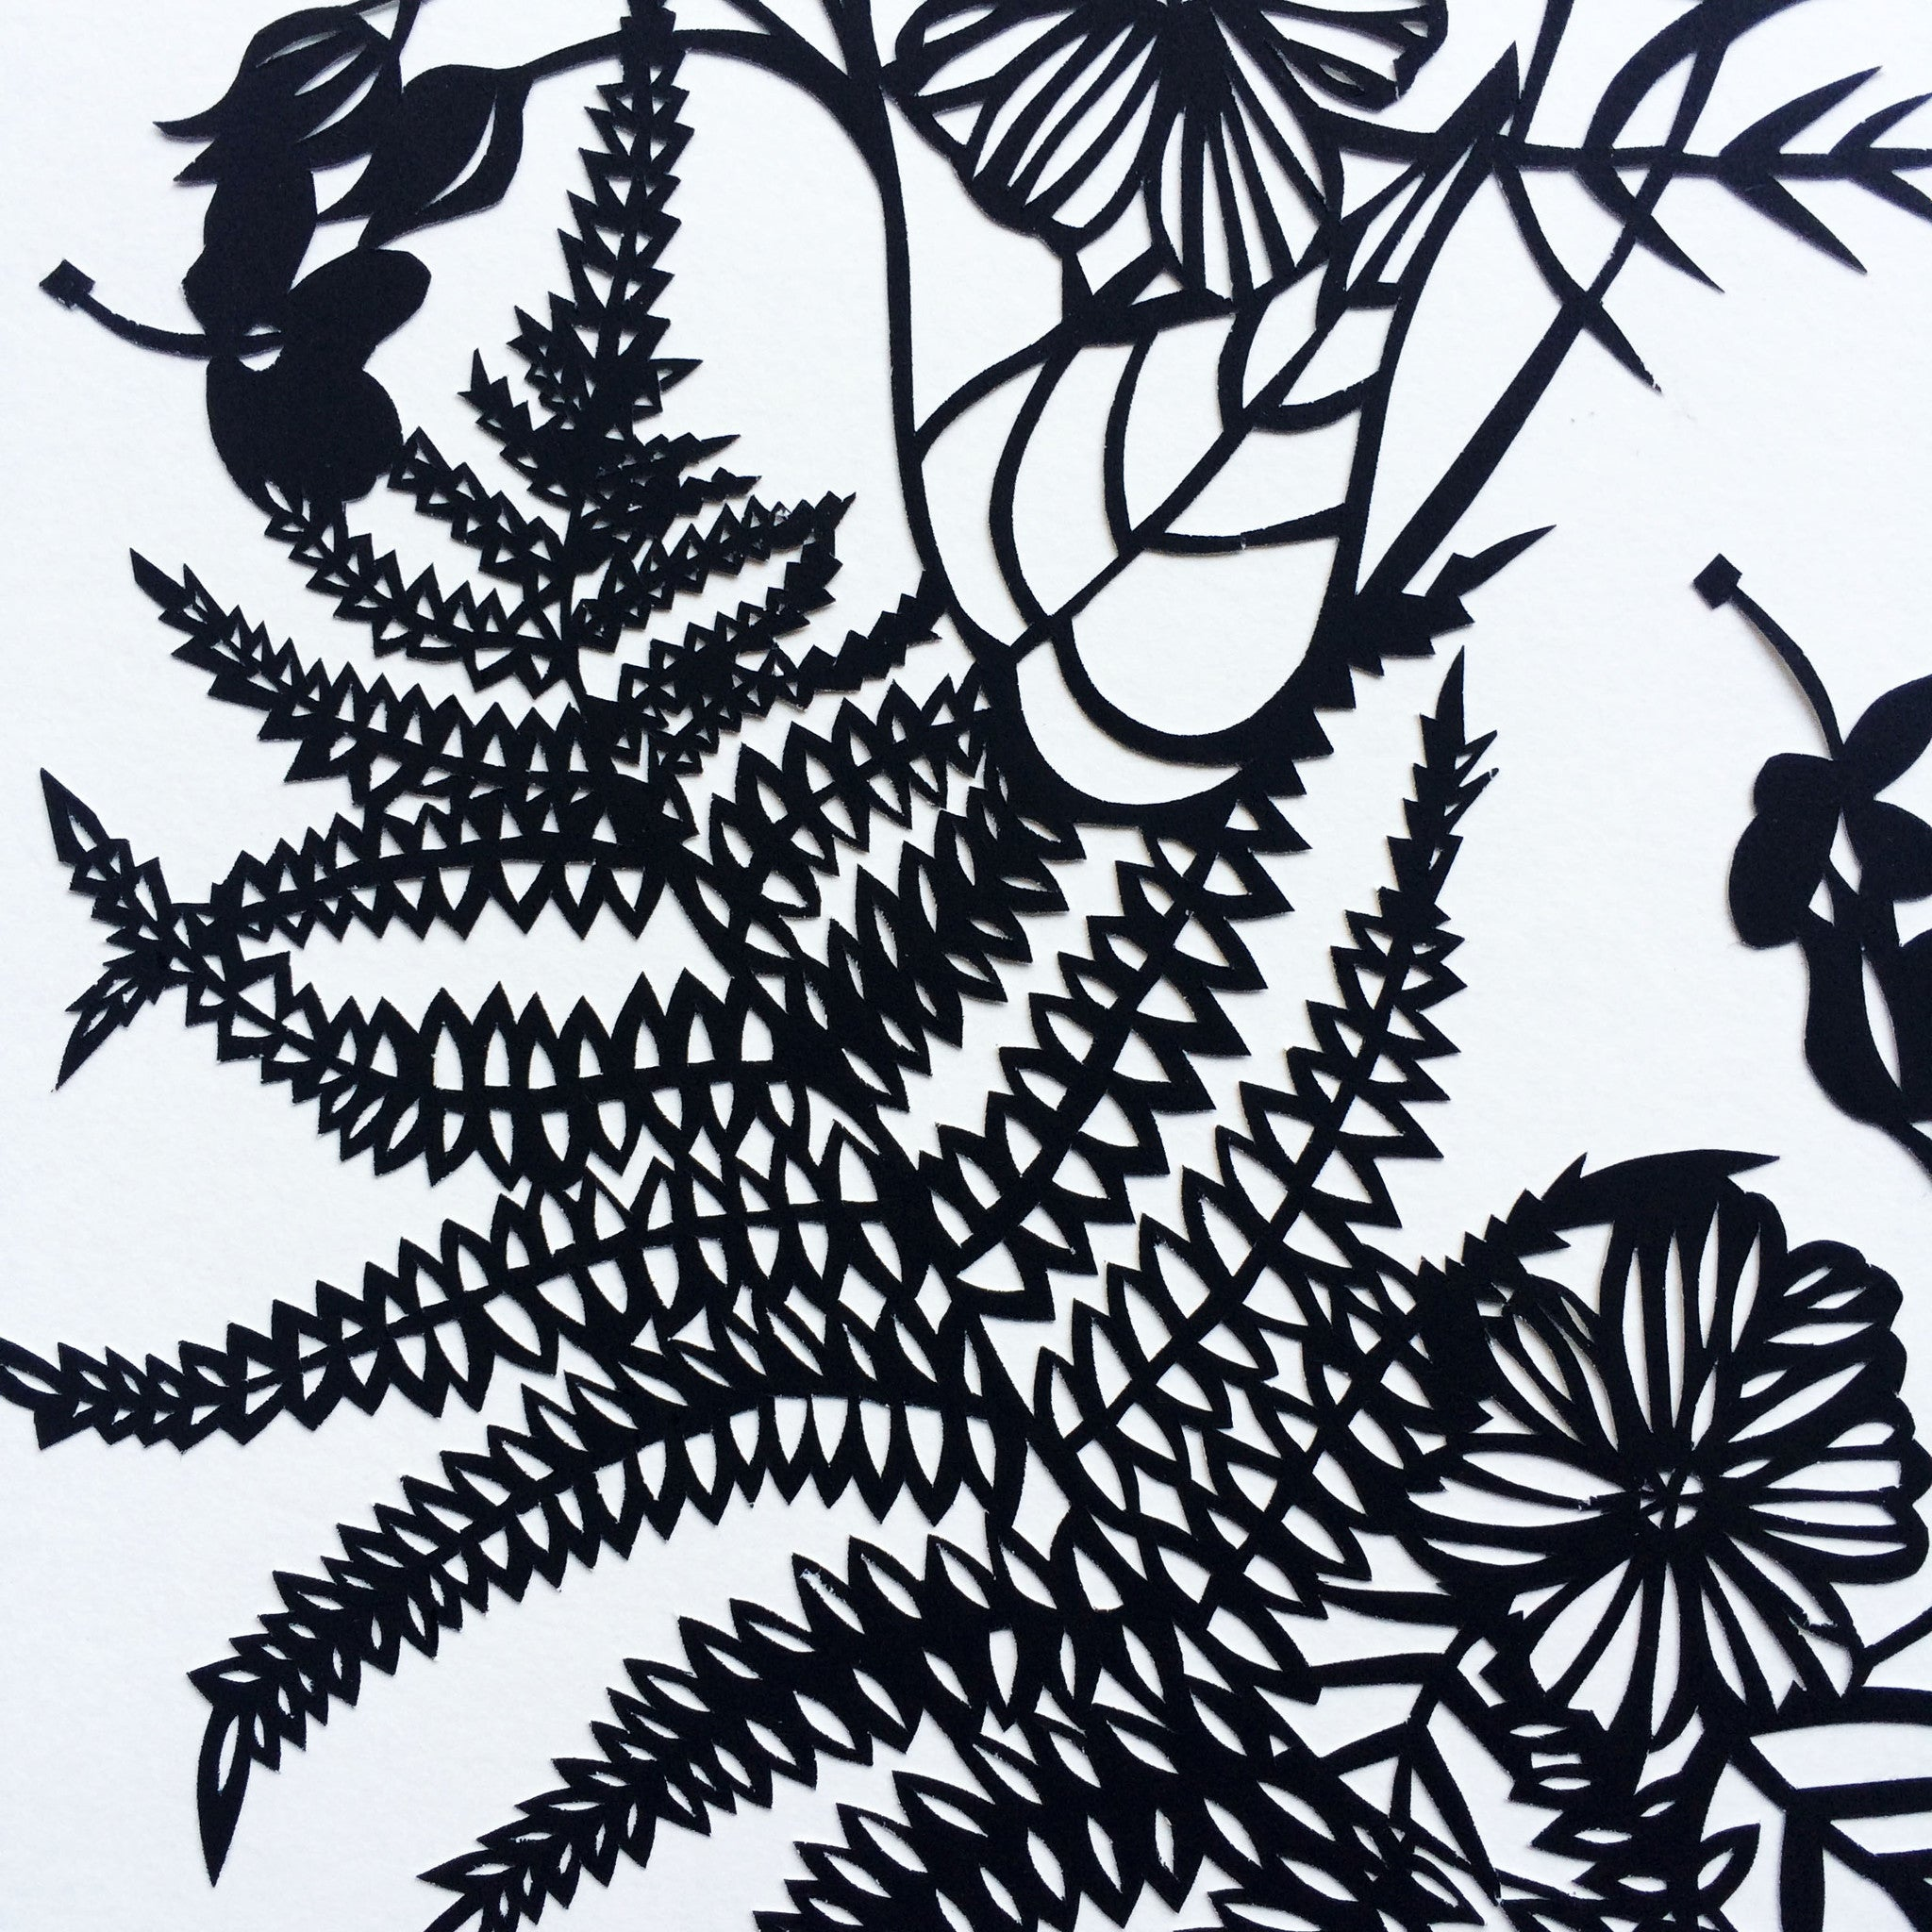 Cosmos & Ferns II | Original Papercut